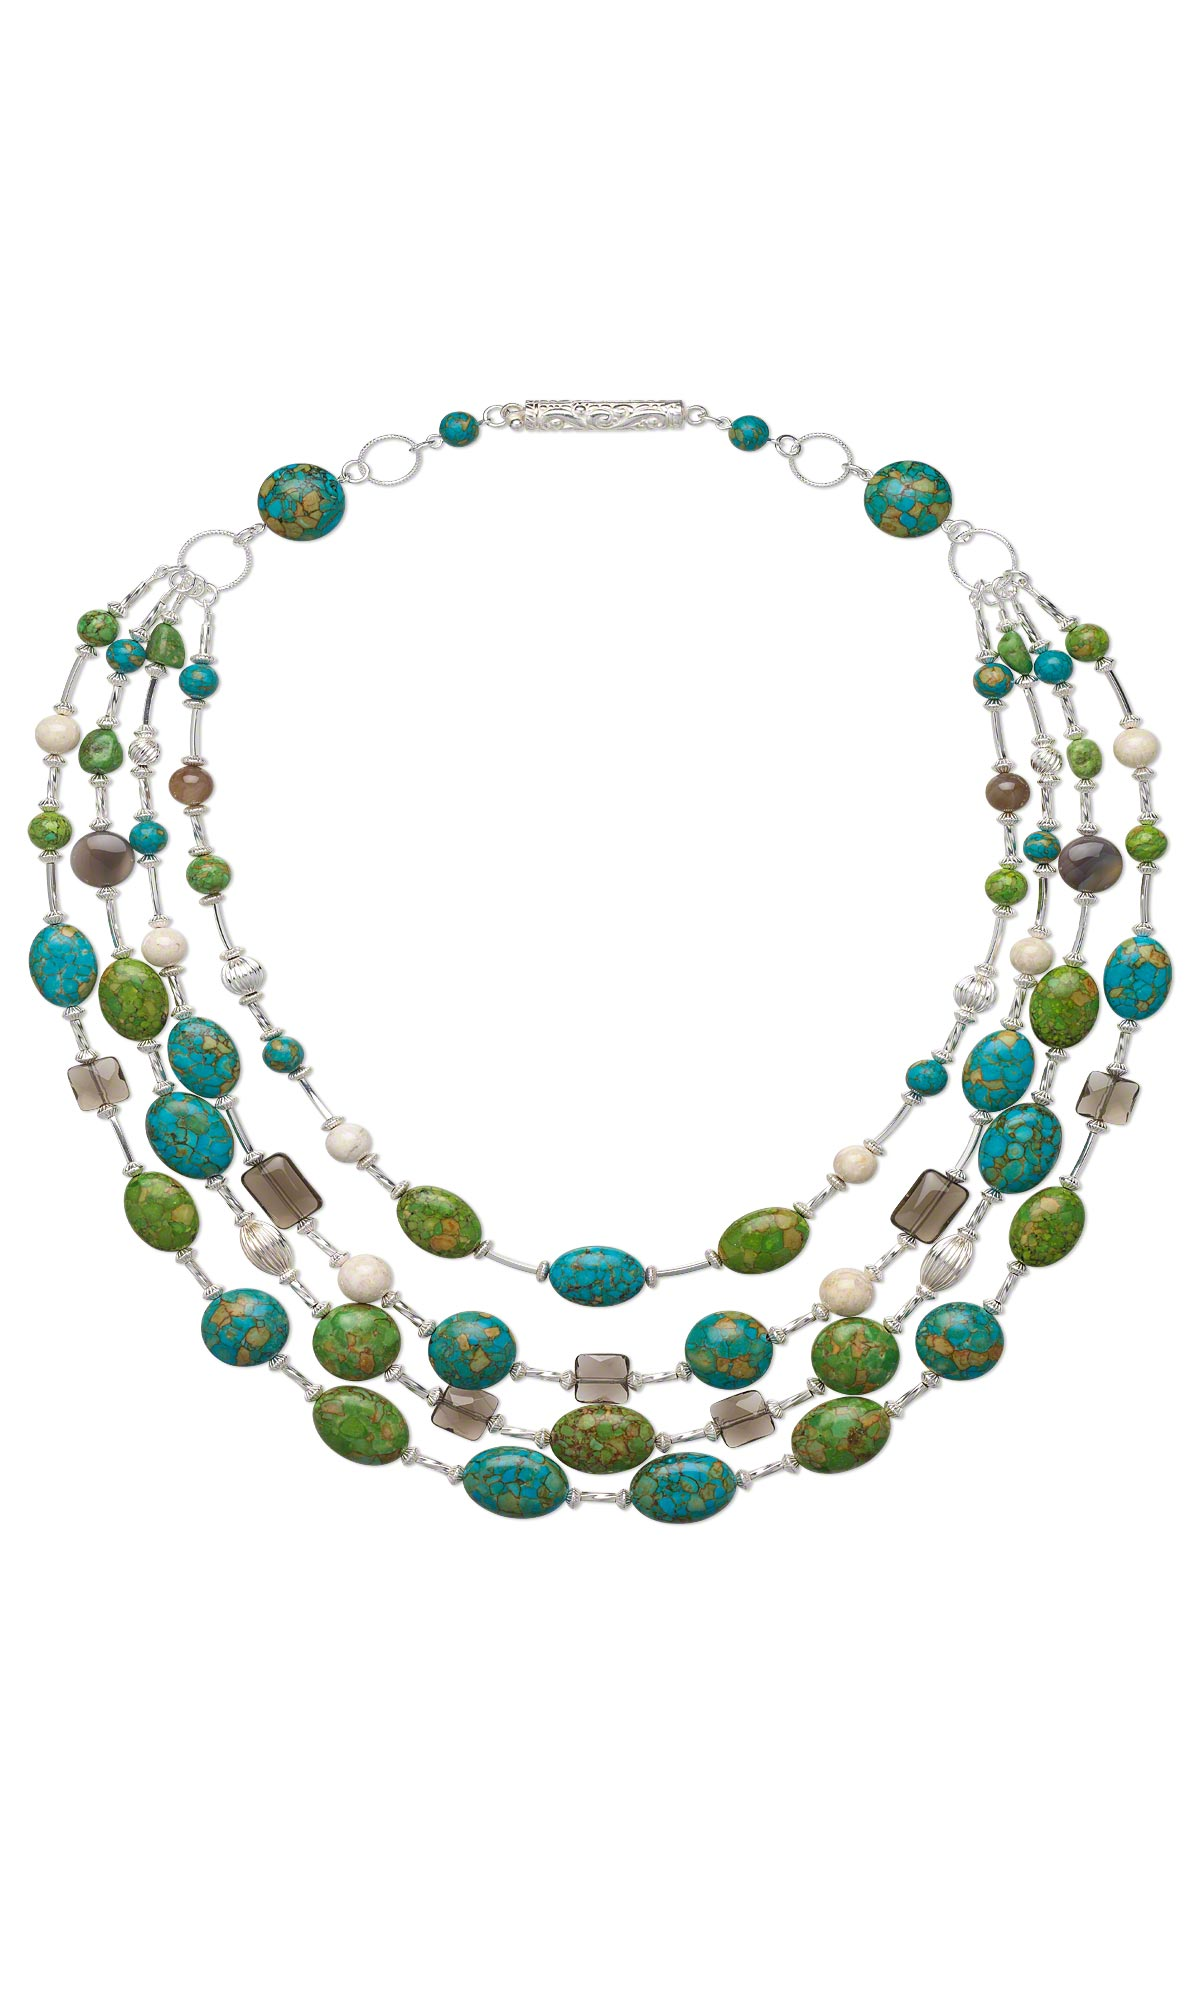 jewelry design multi strand necklace with mosaic